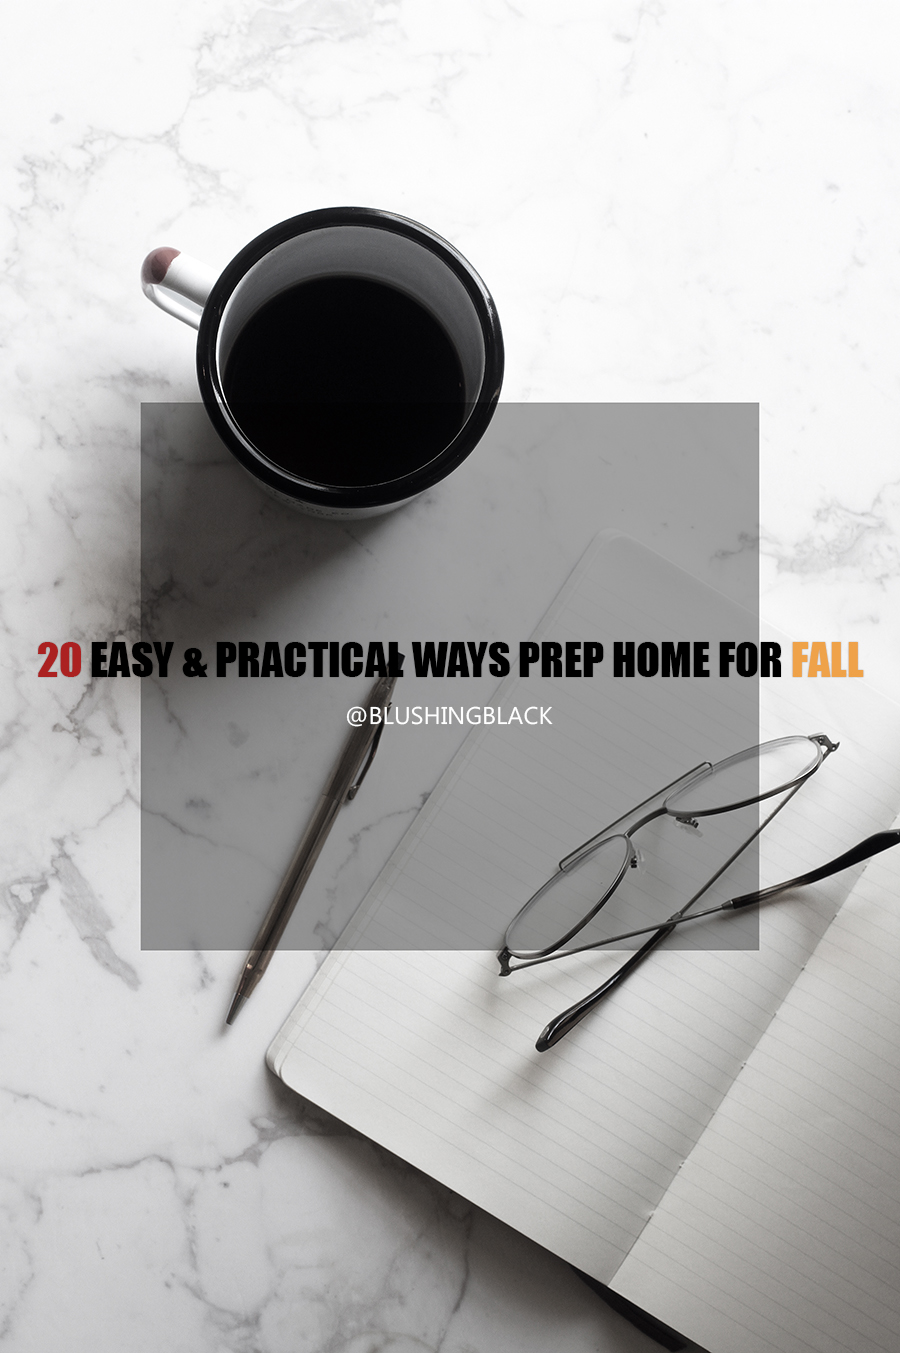 20-things-to-do-to-prep-home-for-fall-1